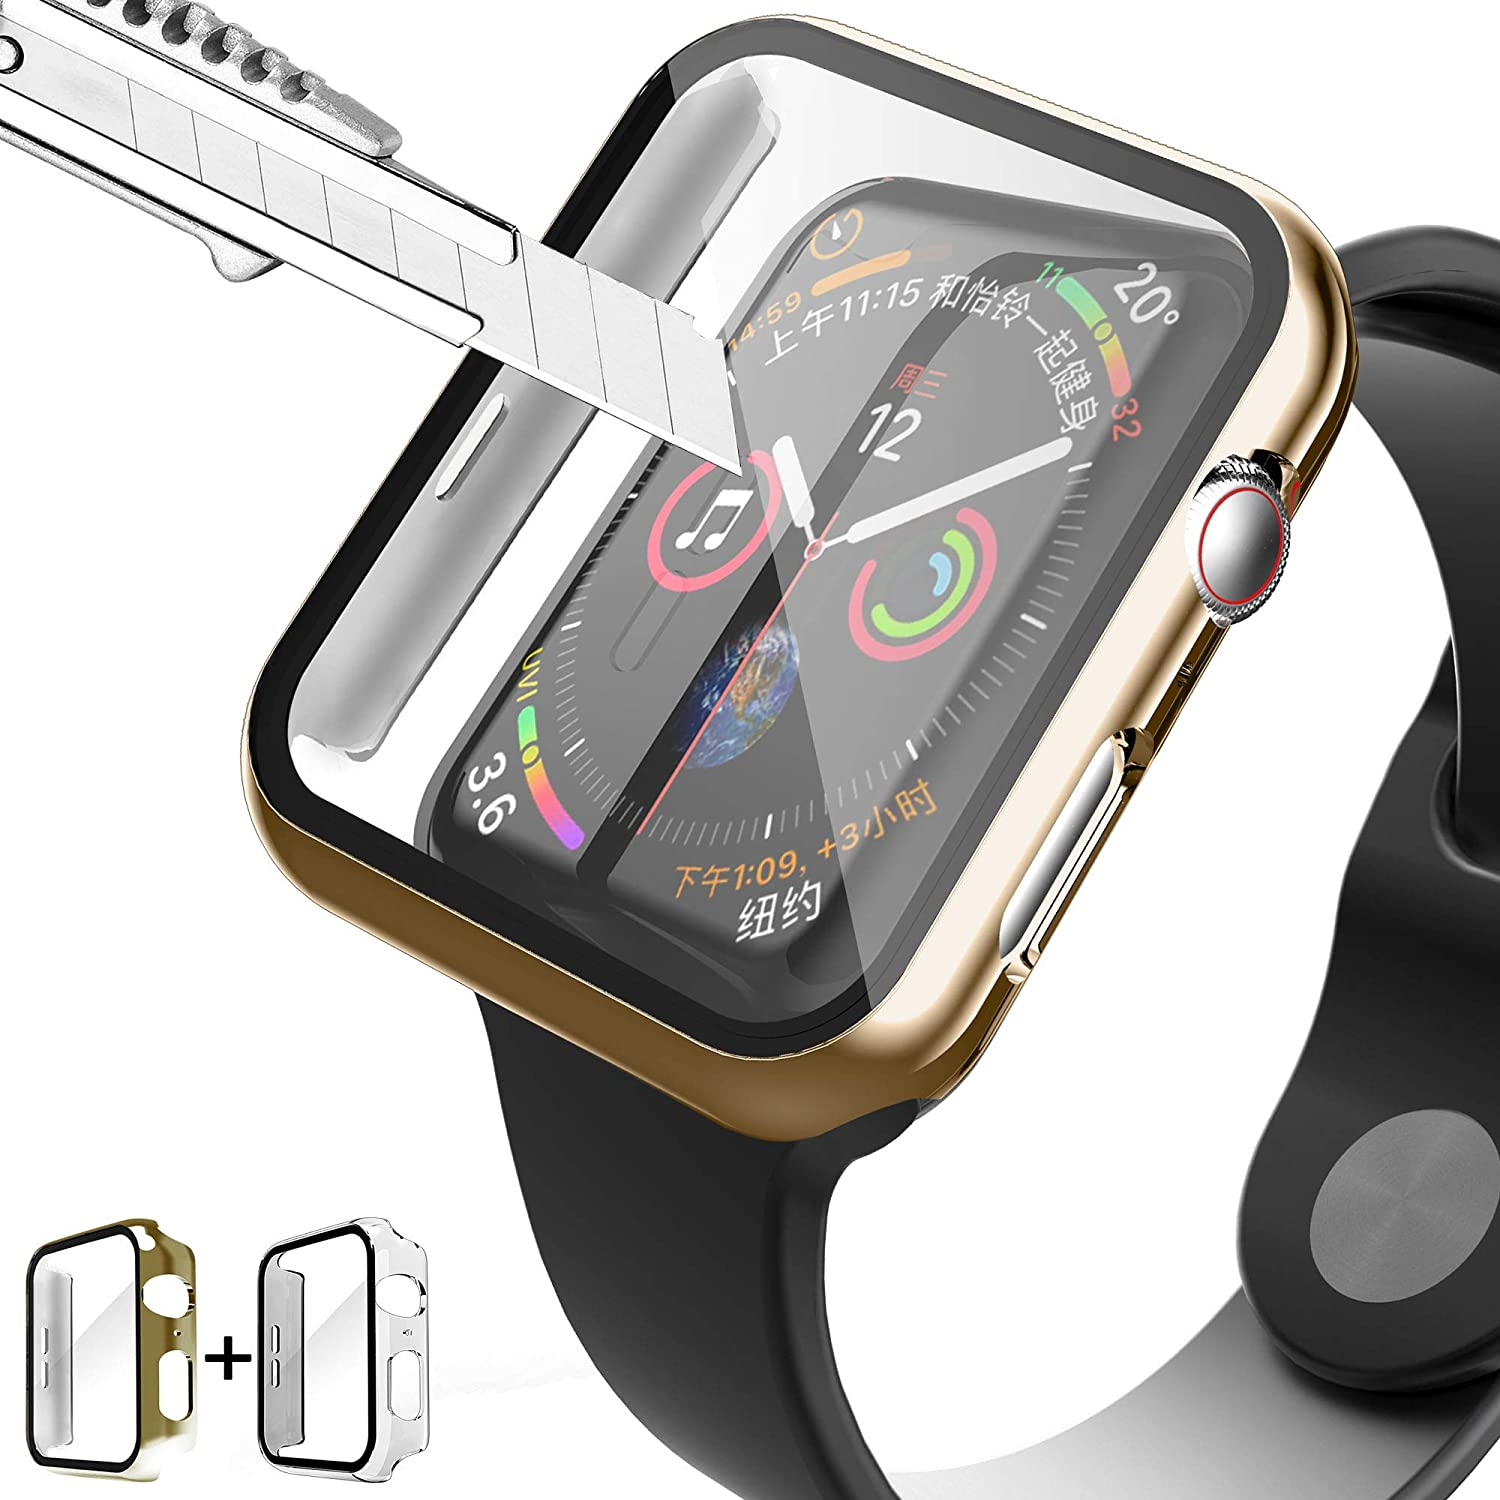 PROATL Full Cover Hard PC Case with 9H Tempered Glass Screen Protector Touch Sensitive iWatch Case Compatible with Apple Watch Series 3/2/1 38mm/42mm (2Packed, Clear+Dark Gold/ 42mm)